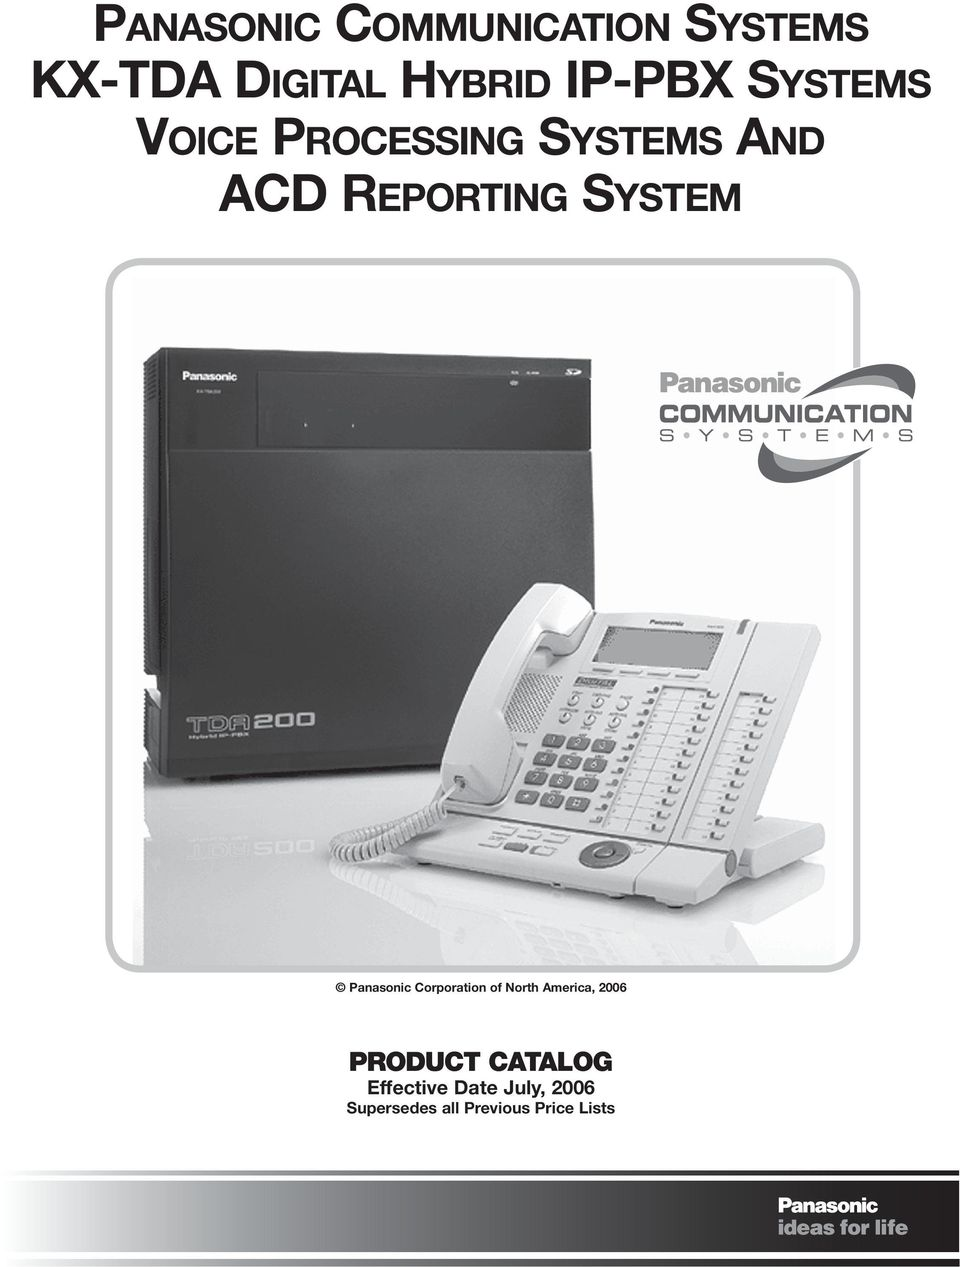 Panasonic Corporation of North America, 2006 PRODUCT CATALOG